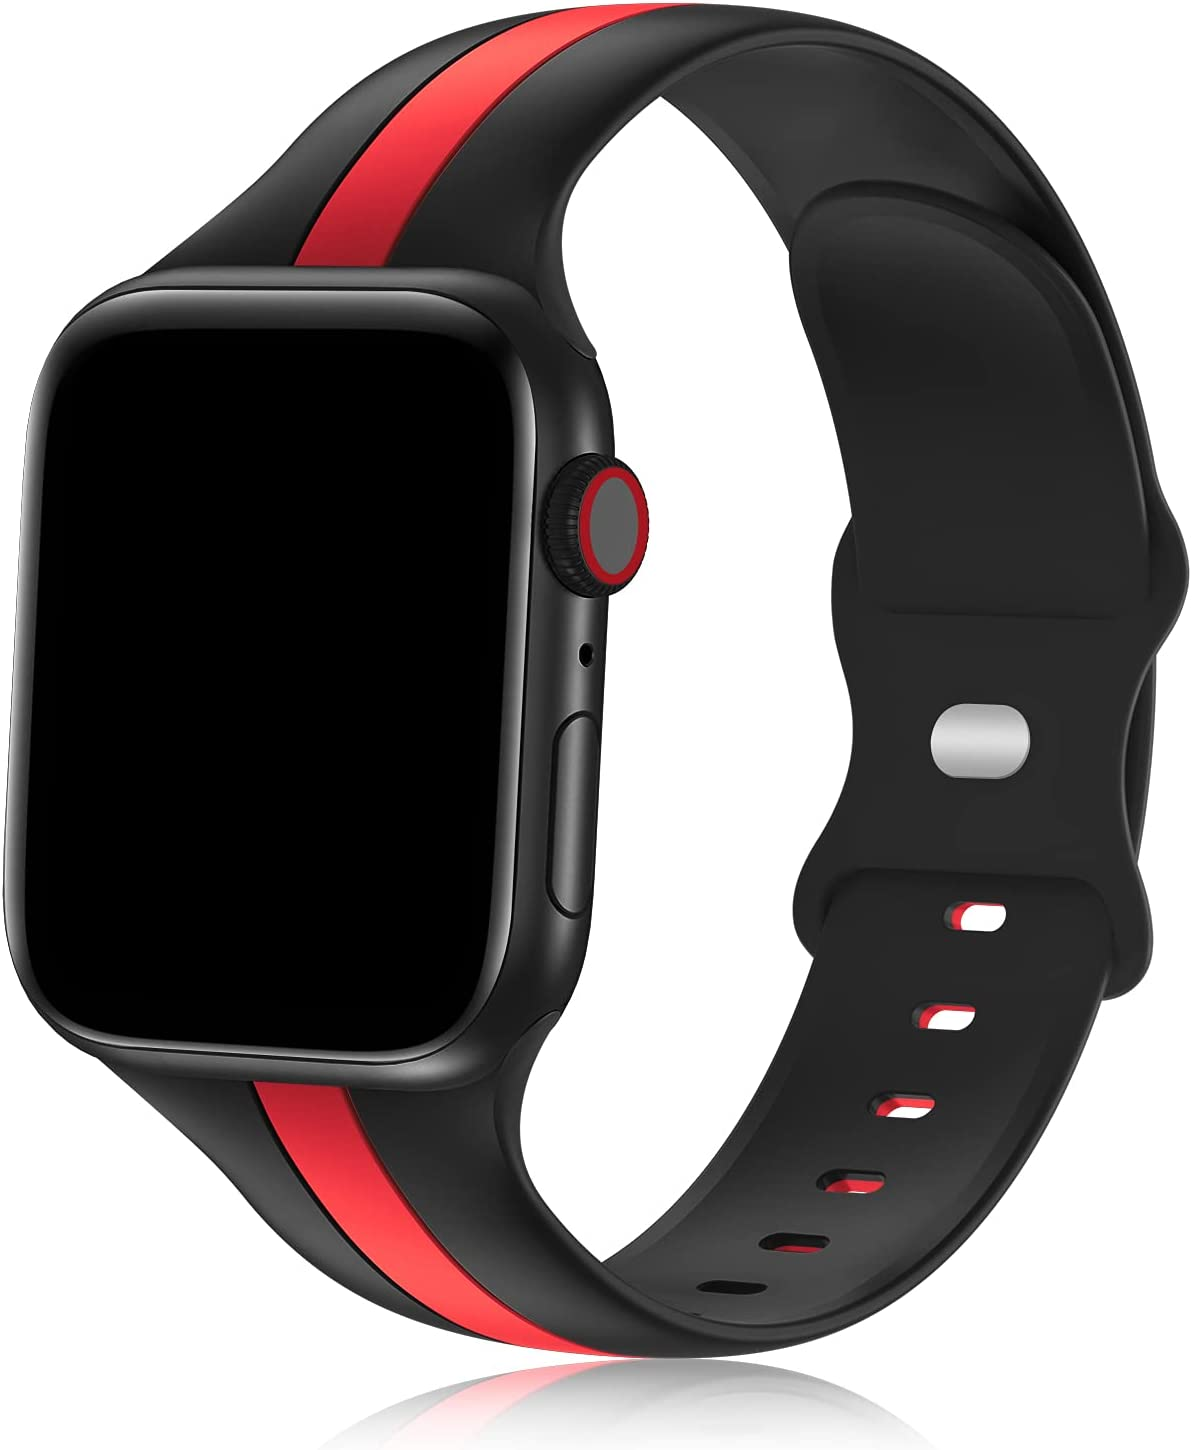 iWabcertoo Designer Sport Bands Compatible with Apple Watch Bands 42mm 44mm 45mm Women and Men,Soft Silicone Replacement Strap Bands for iWatch Series 7 6 5 4 3 2 1 SE Black Red